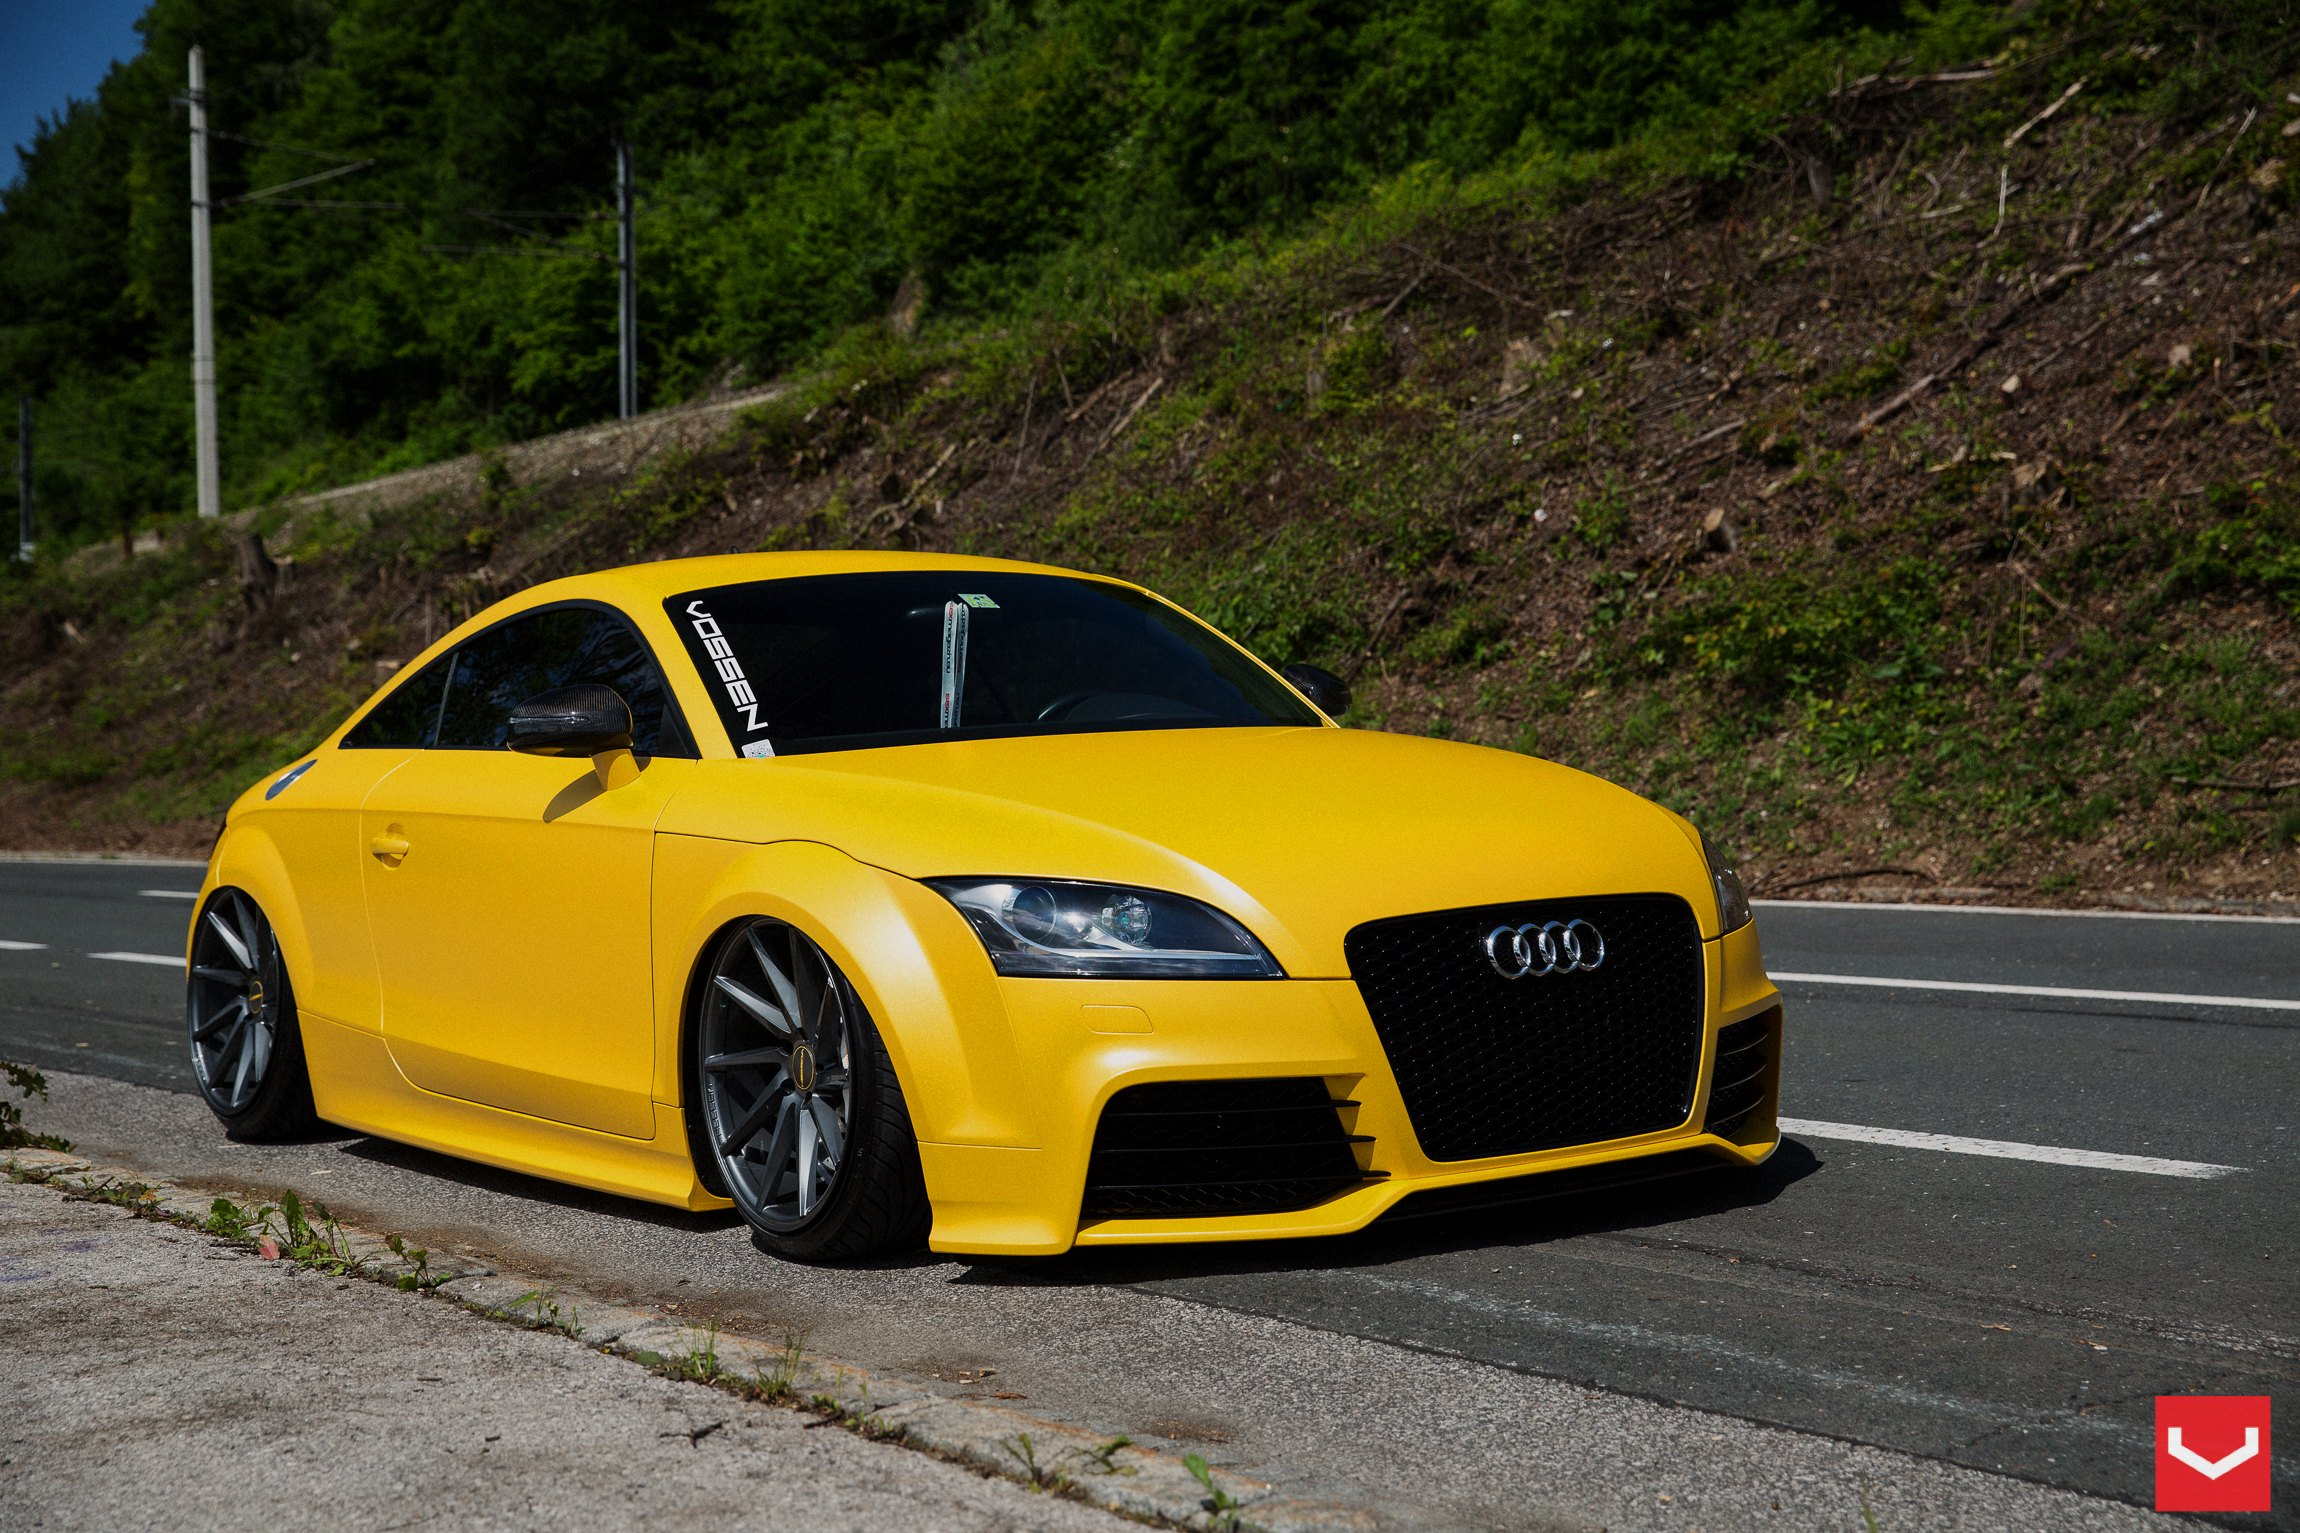 Cool Exterior Upgrades for Yellow Audi TT — CARiD.com Gallery